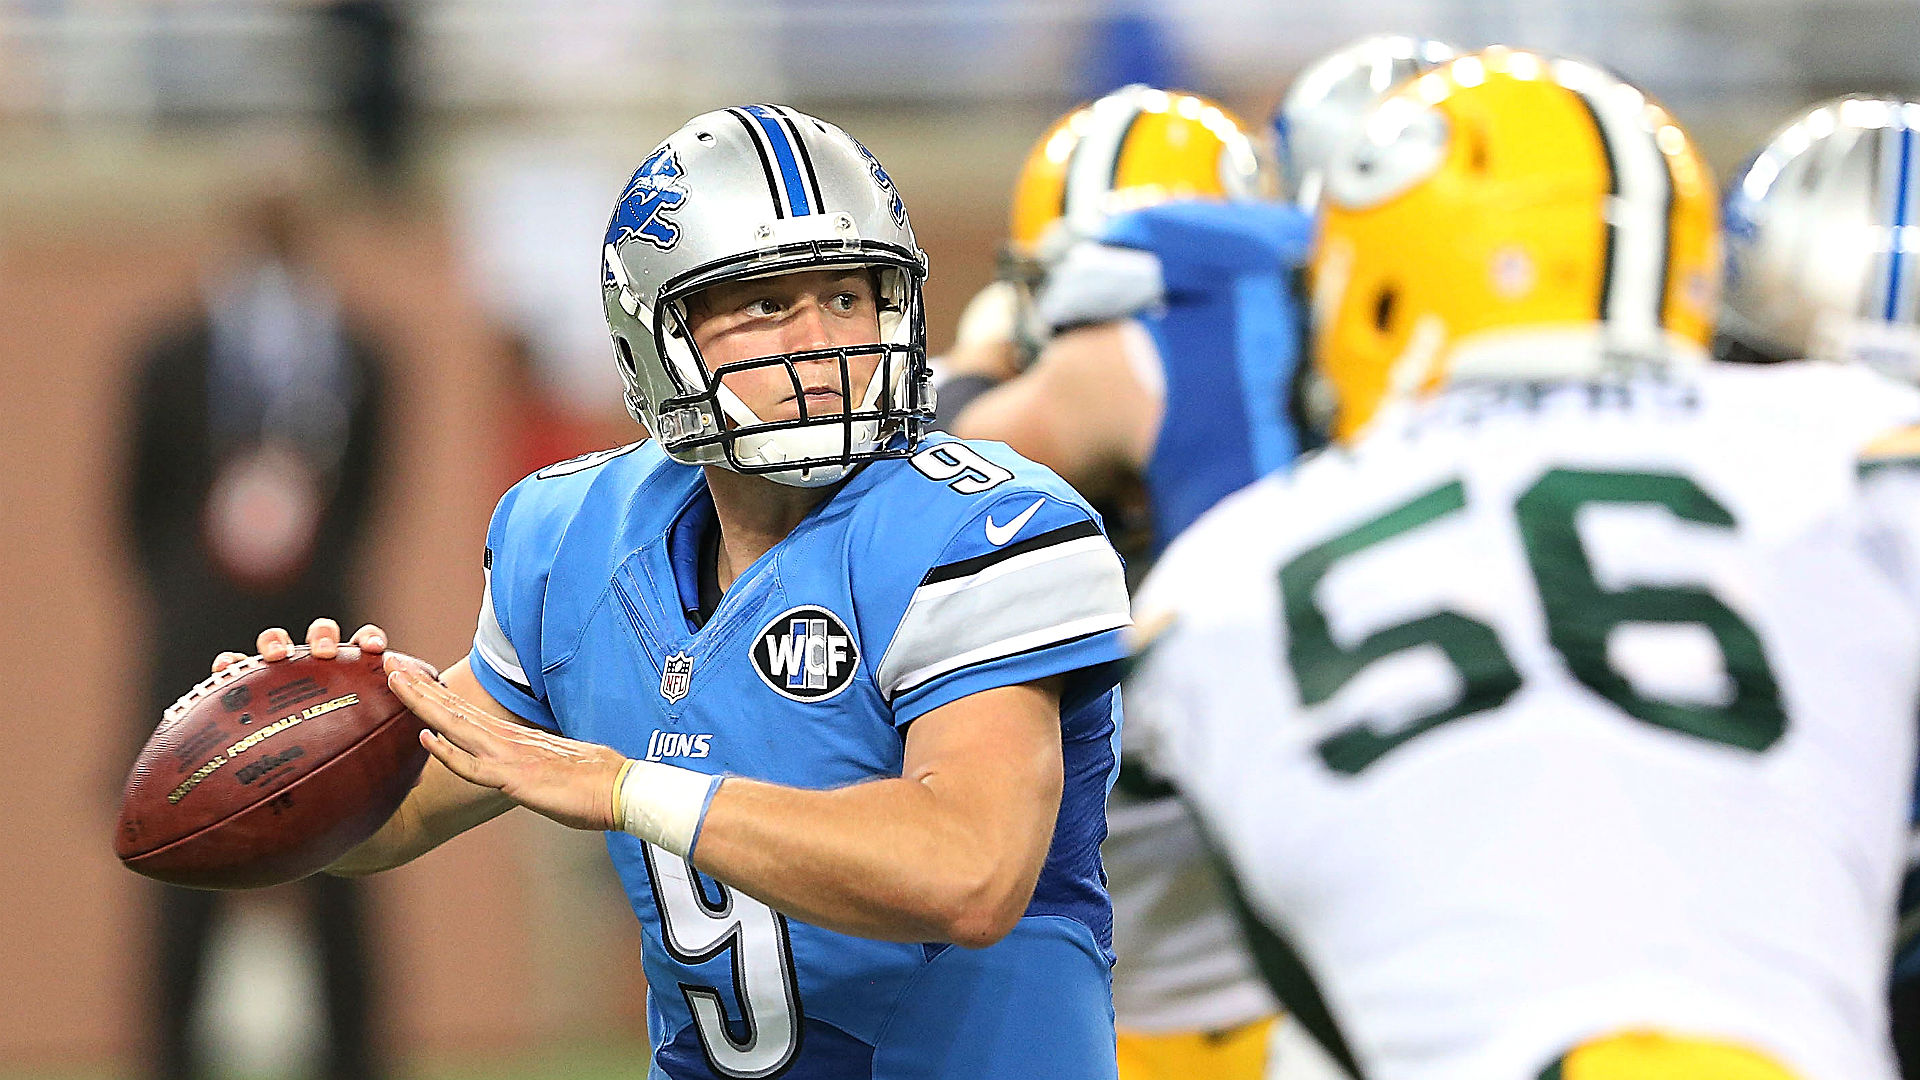 Lions vs. Packers betting lines and pick — Detroit has struggled mightily at Green Bay